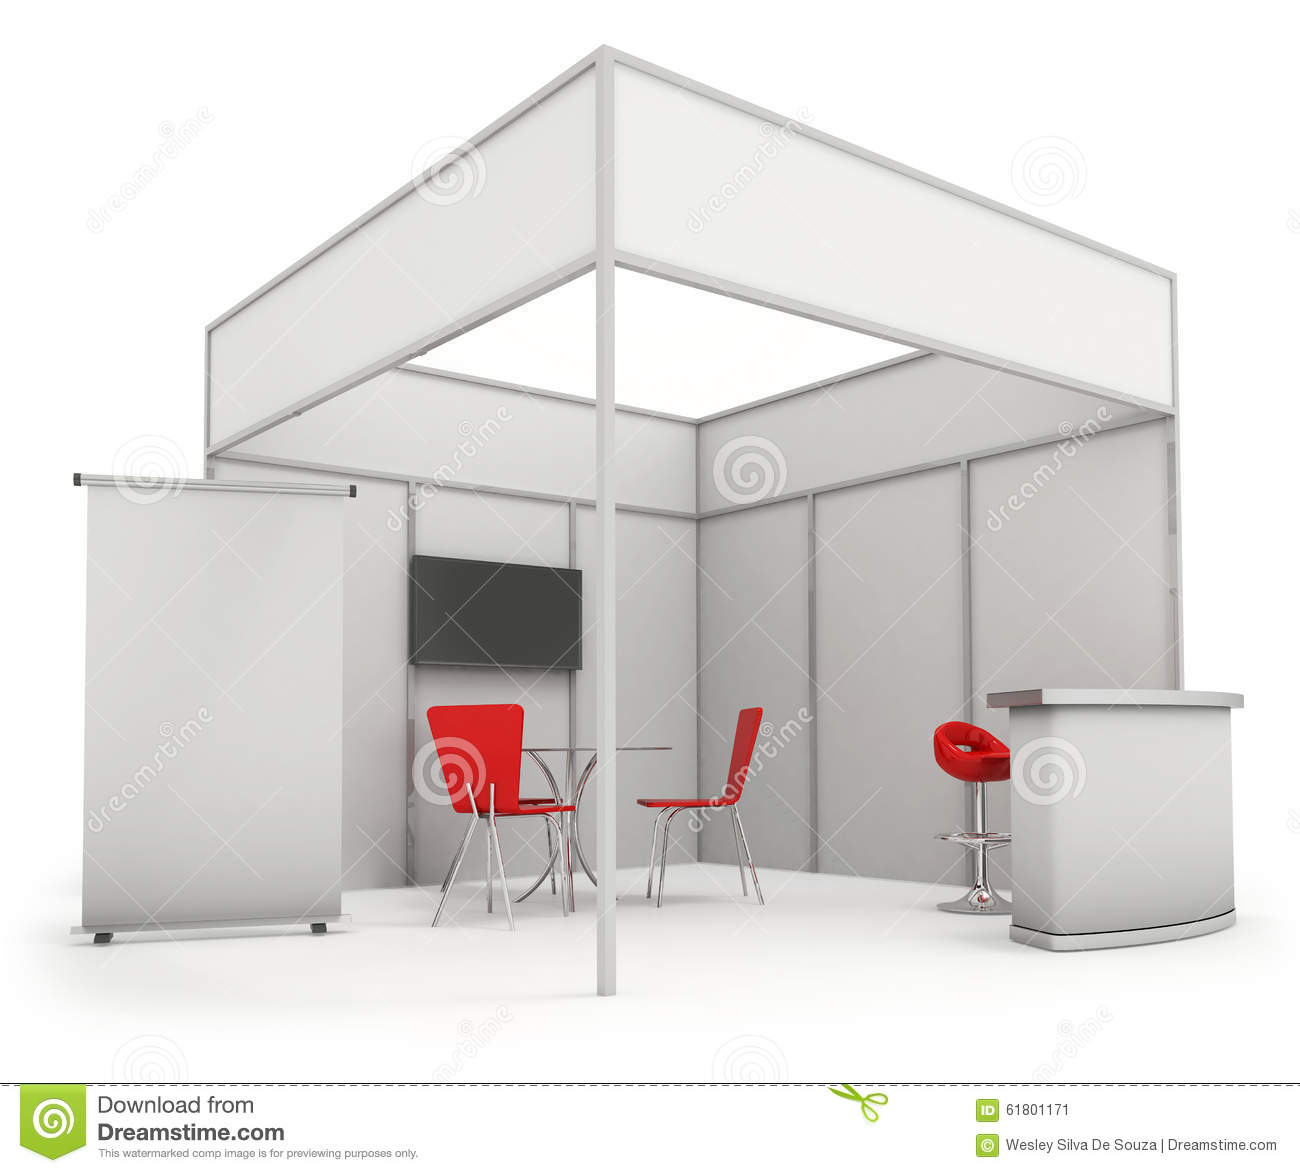 Exhibition Booth Free Download : Trade exhibition stand and blank roll banner d render